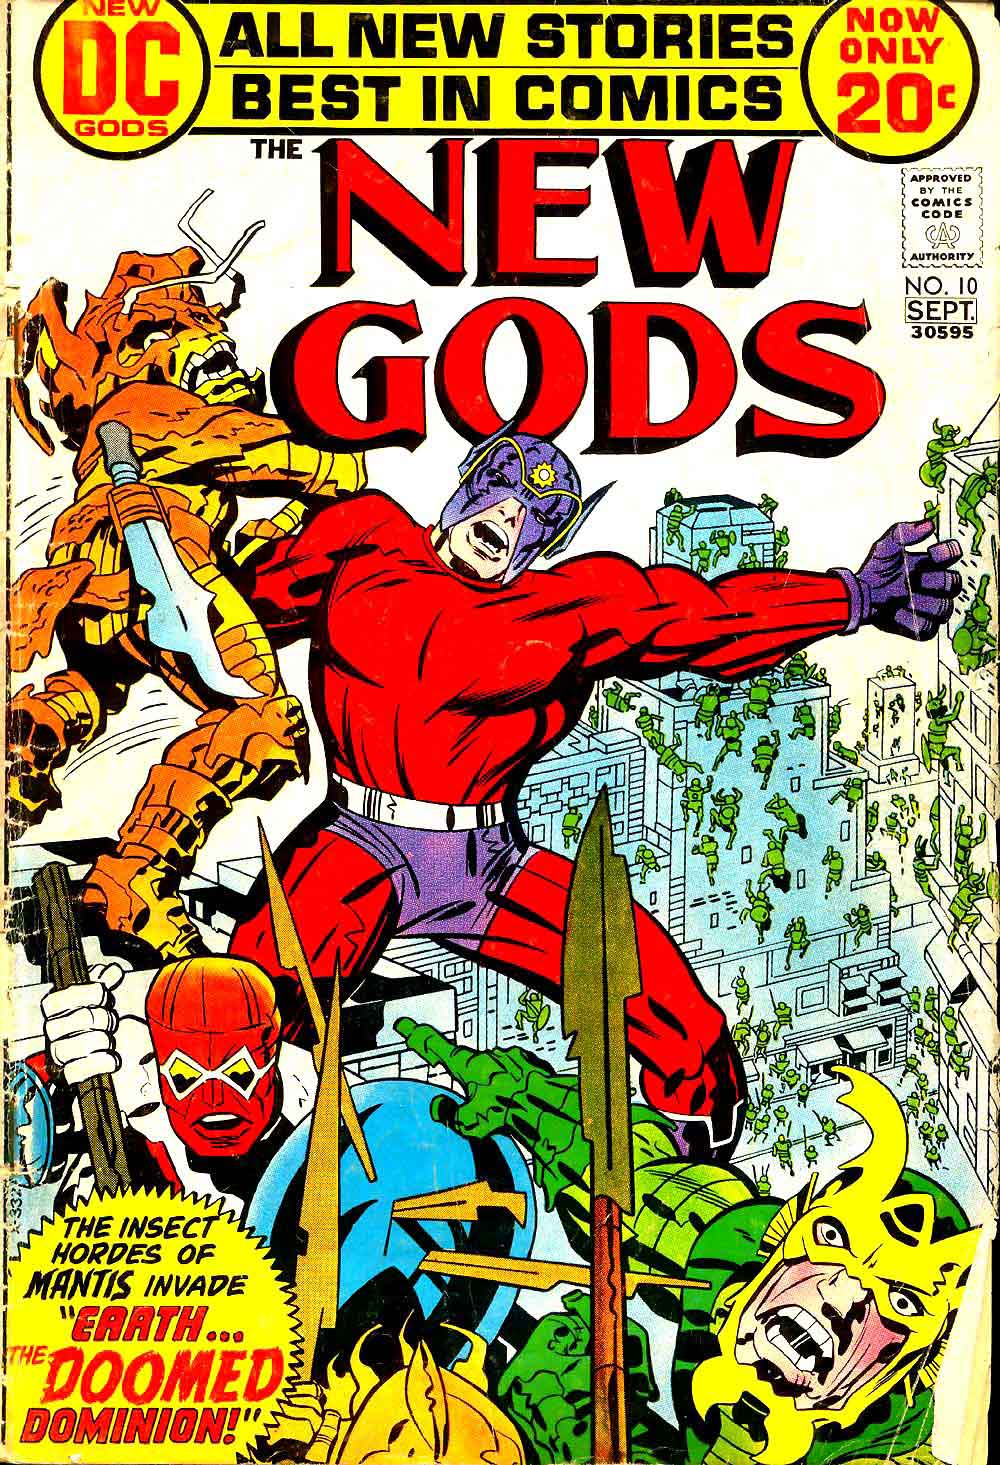 New Gods v1 #10 dc bronze age comic book cover art by Jack Kirby